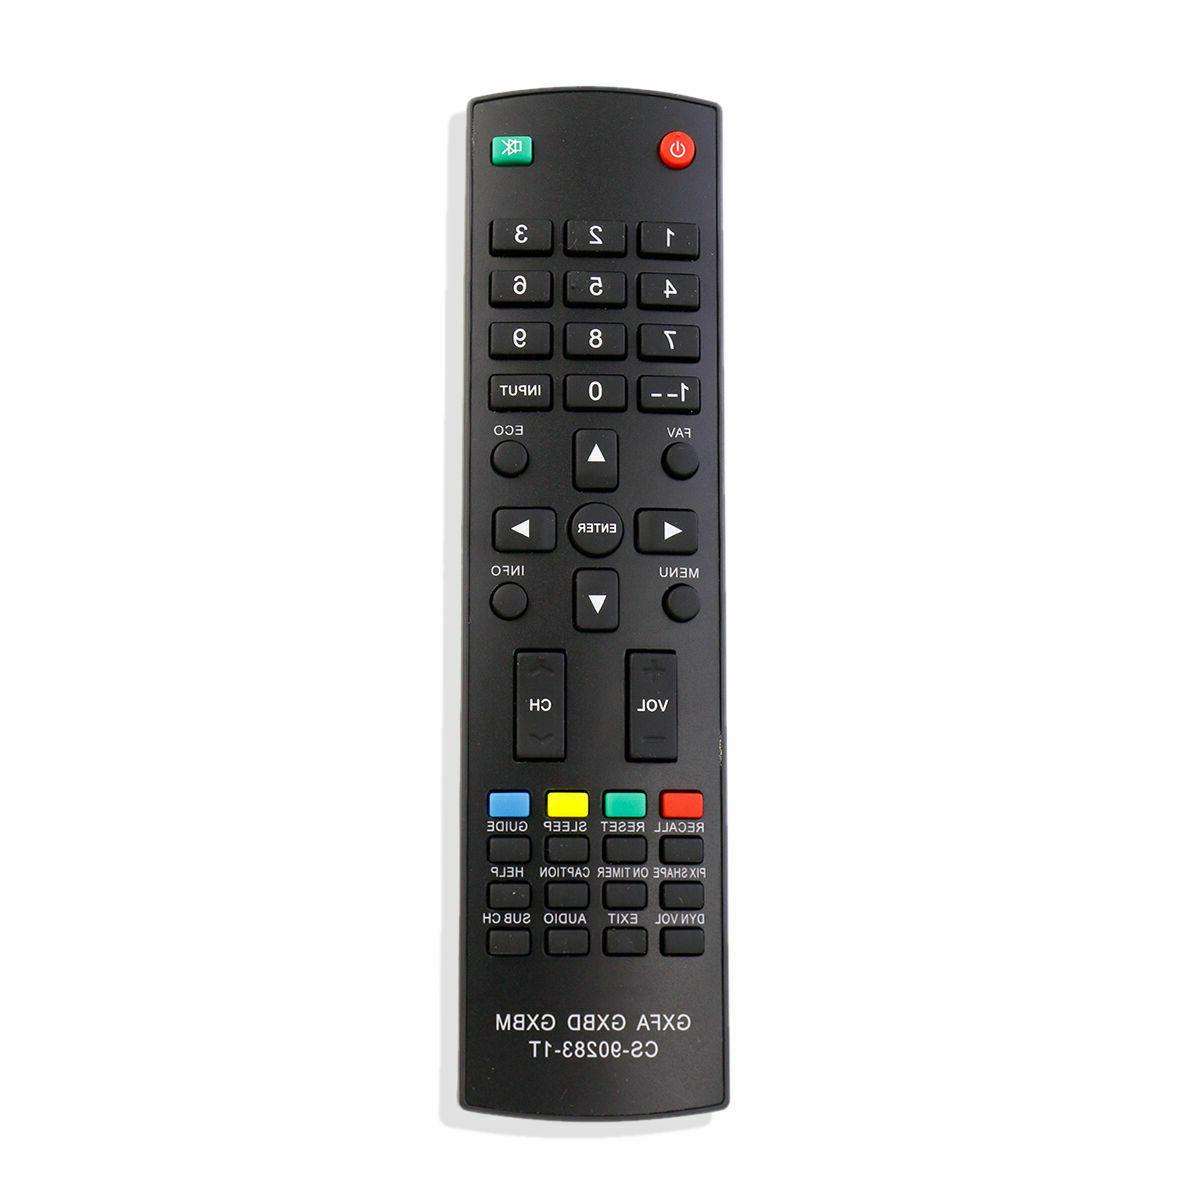 CS-90283-1T GXBD GXBM GXFA Replace Remote for Sanyo TV DP322